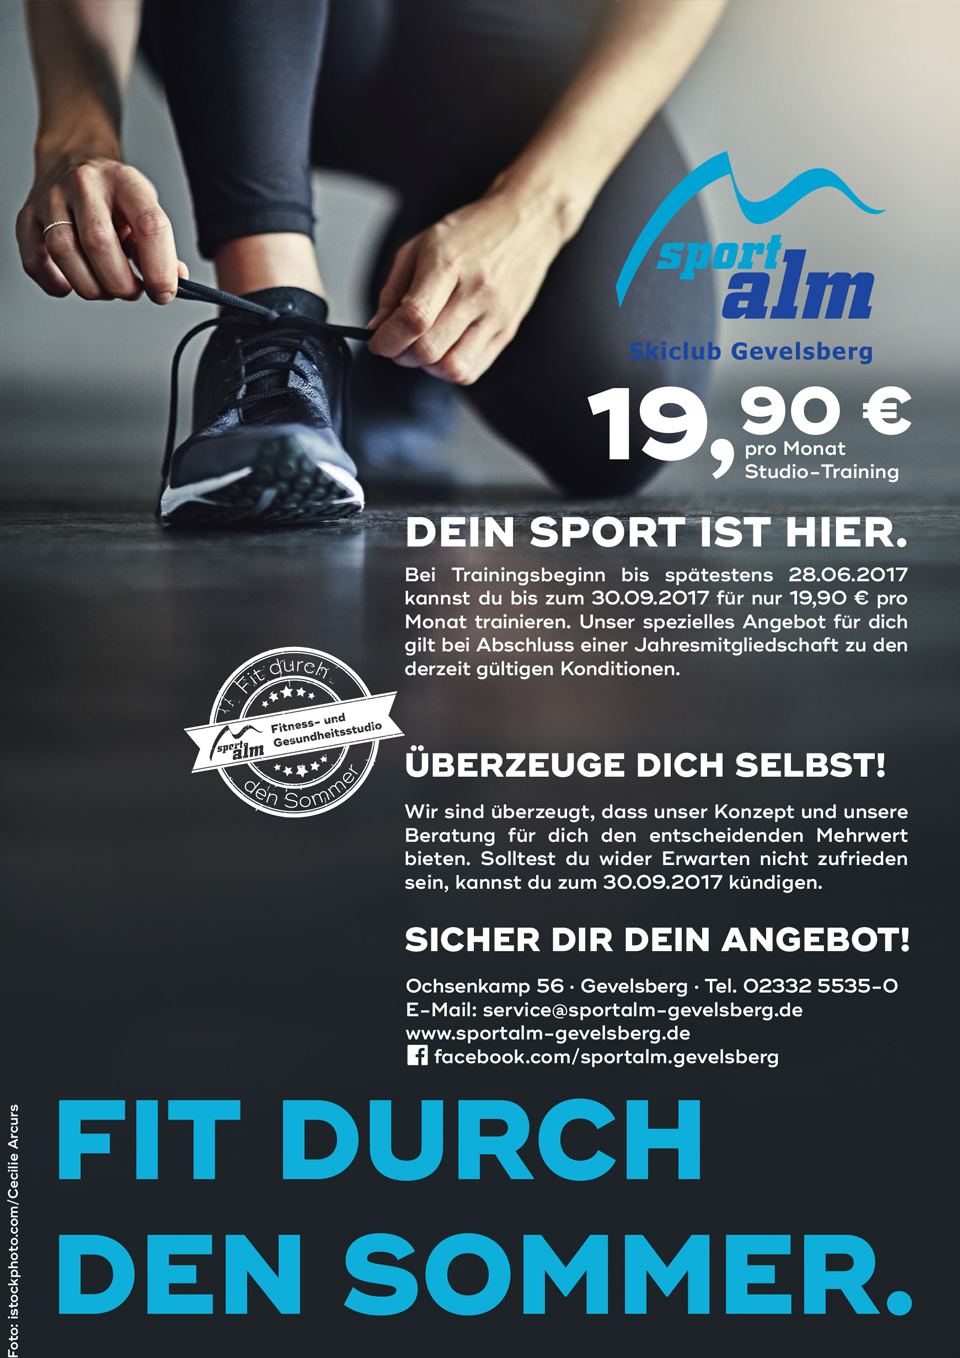 Fit durch den Sommer_lang